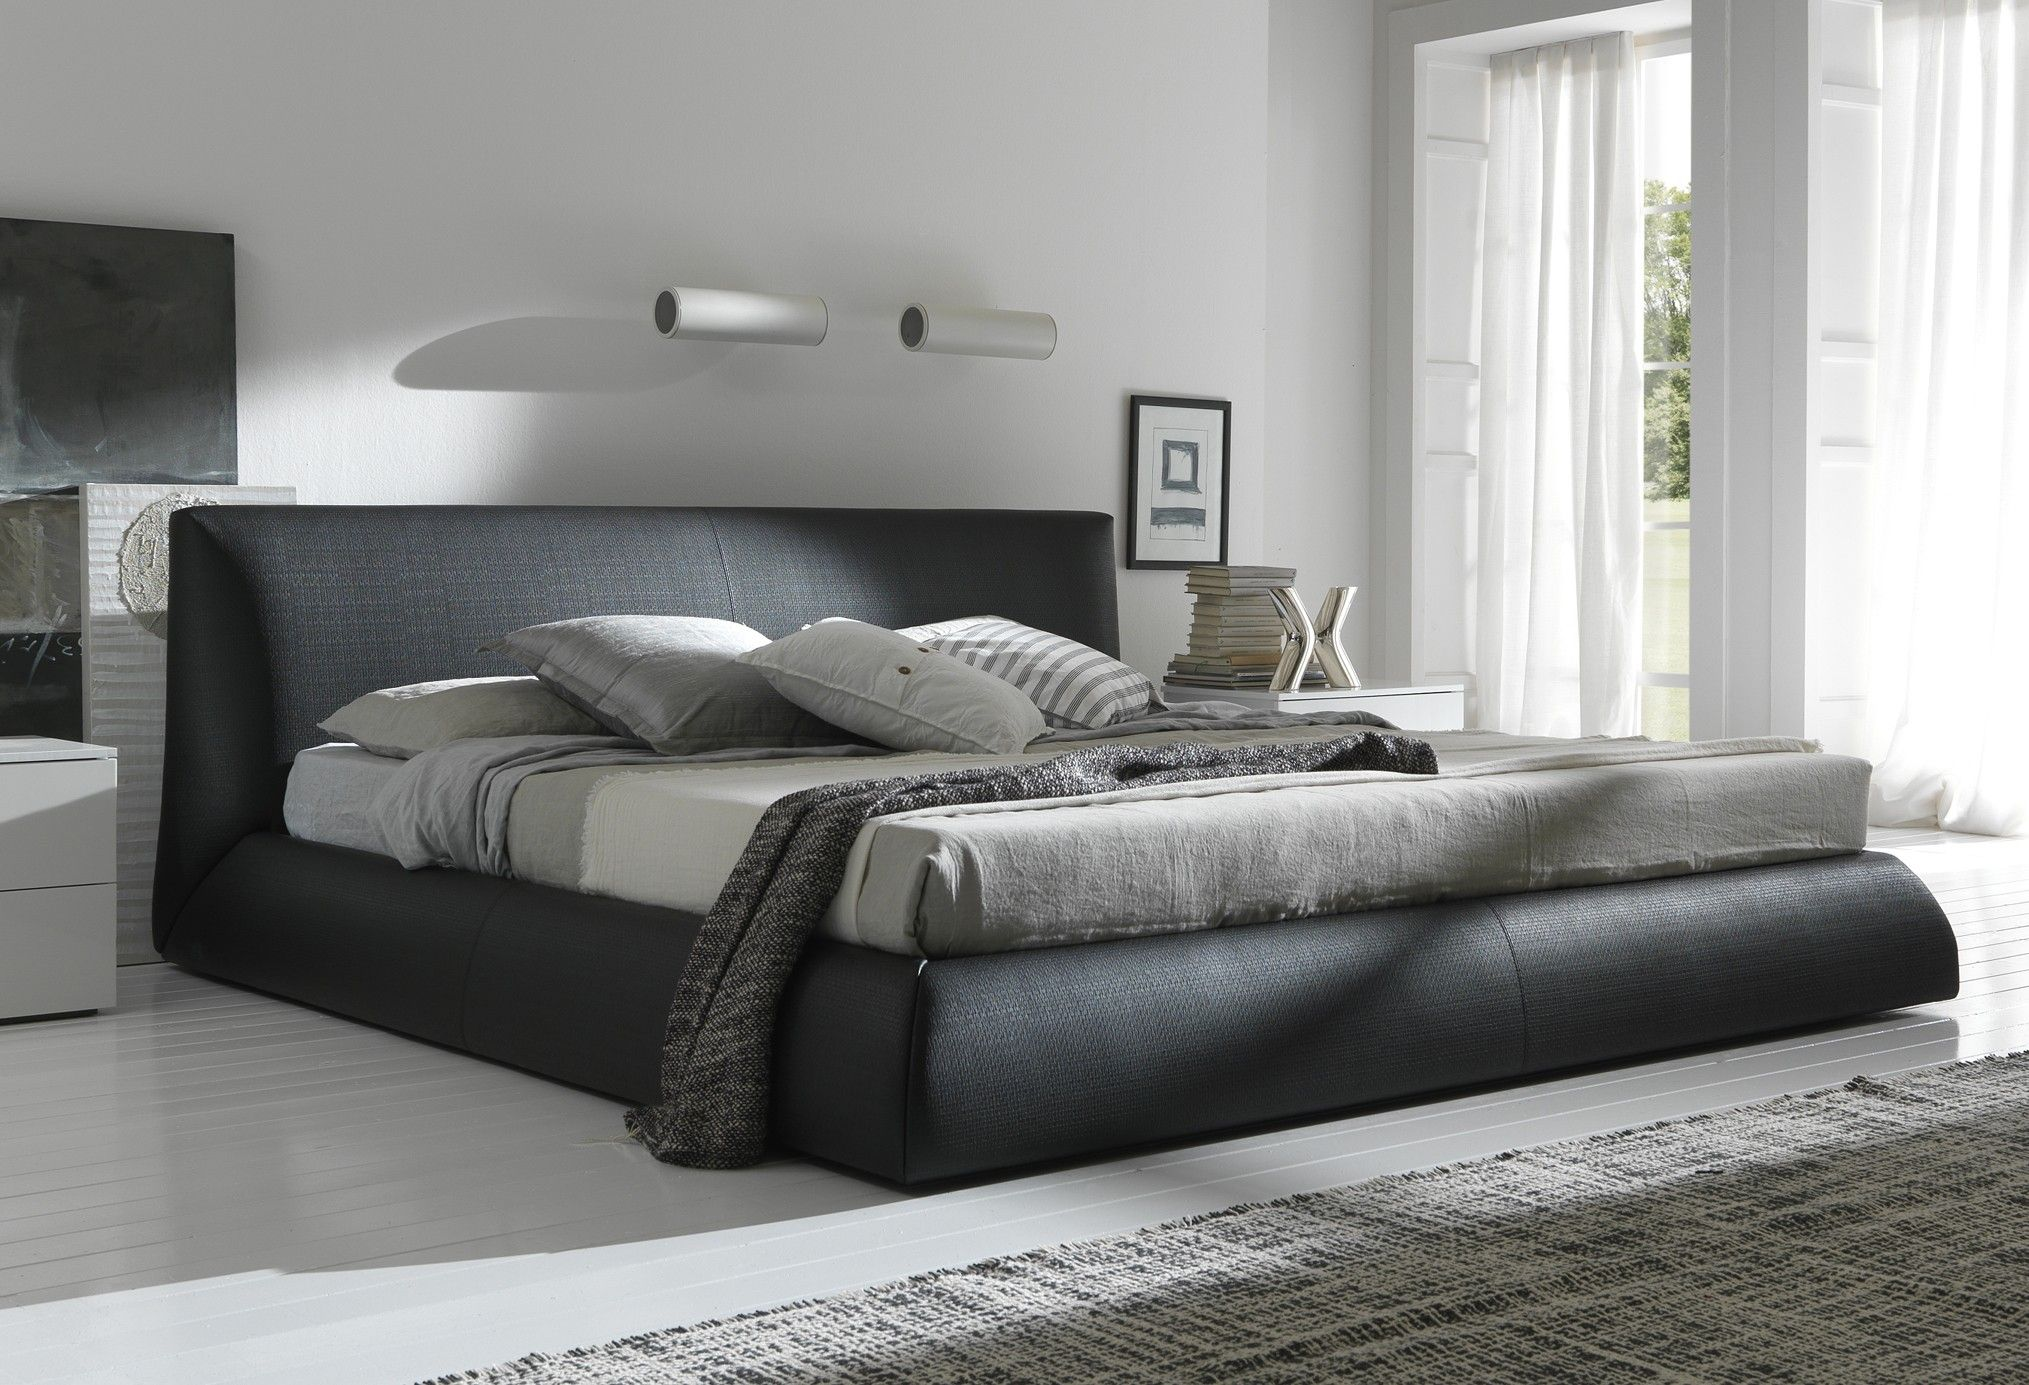 Great Modern Black Upholstered Floor King Bed Frame With Headboard For Masculine  Bedroom Design As Well As